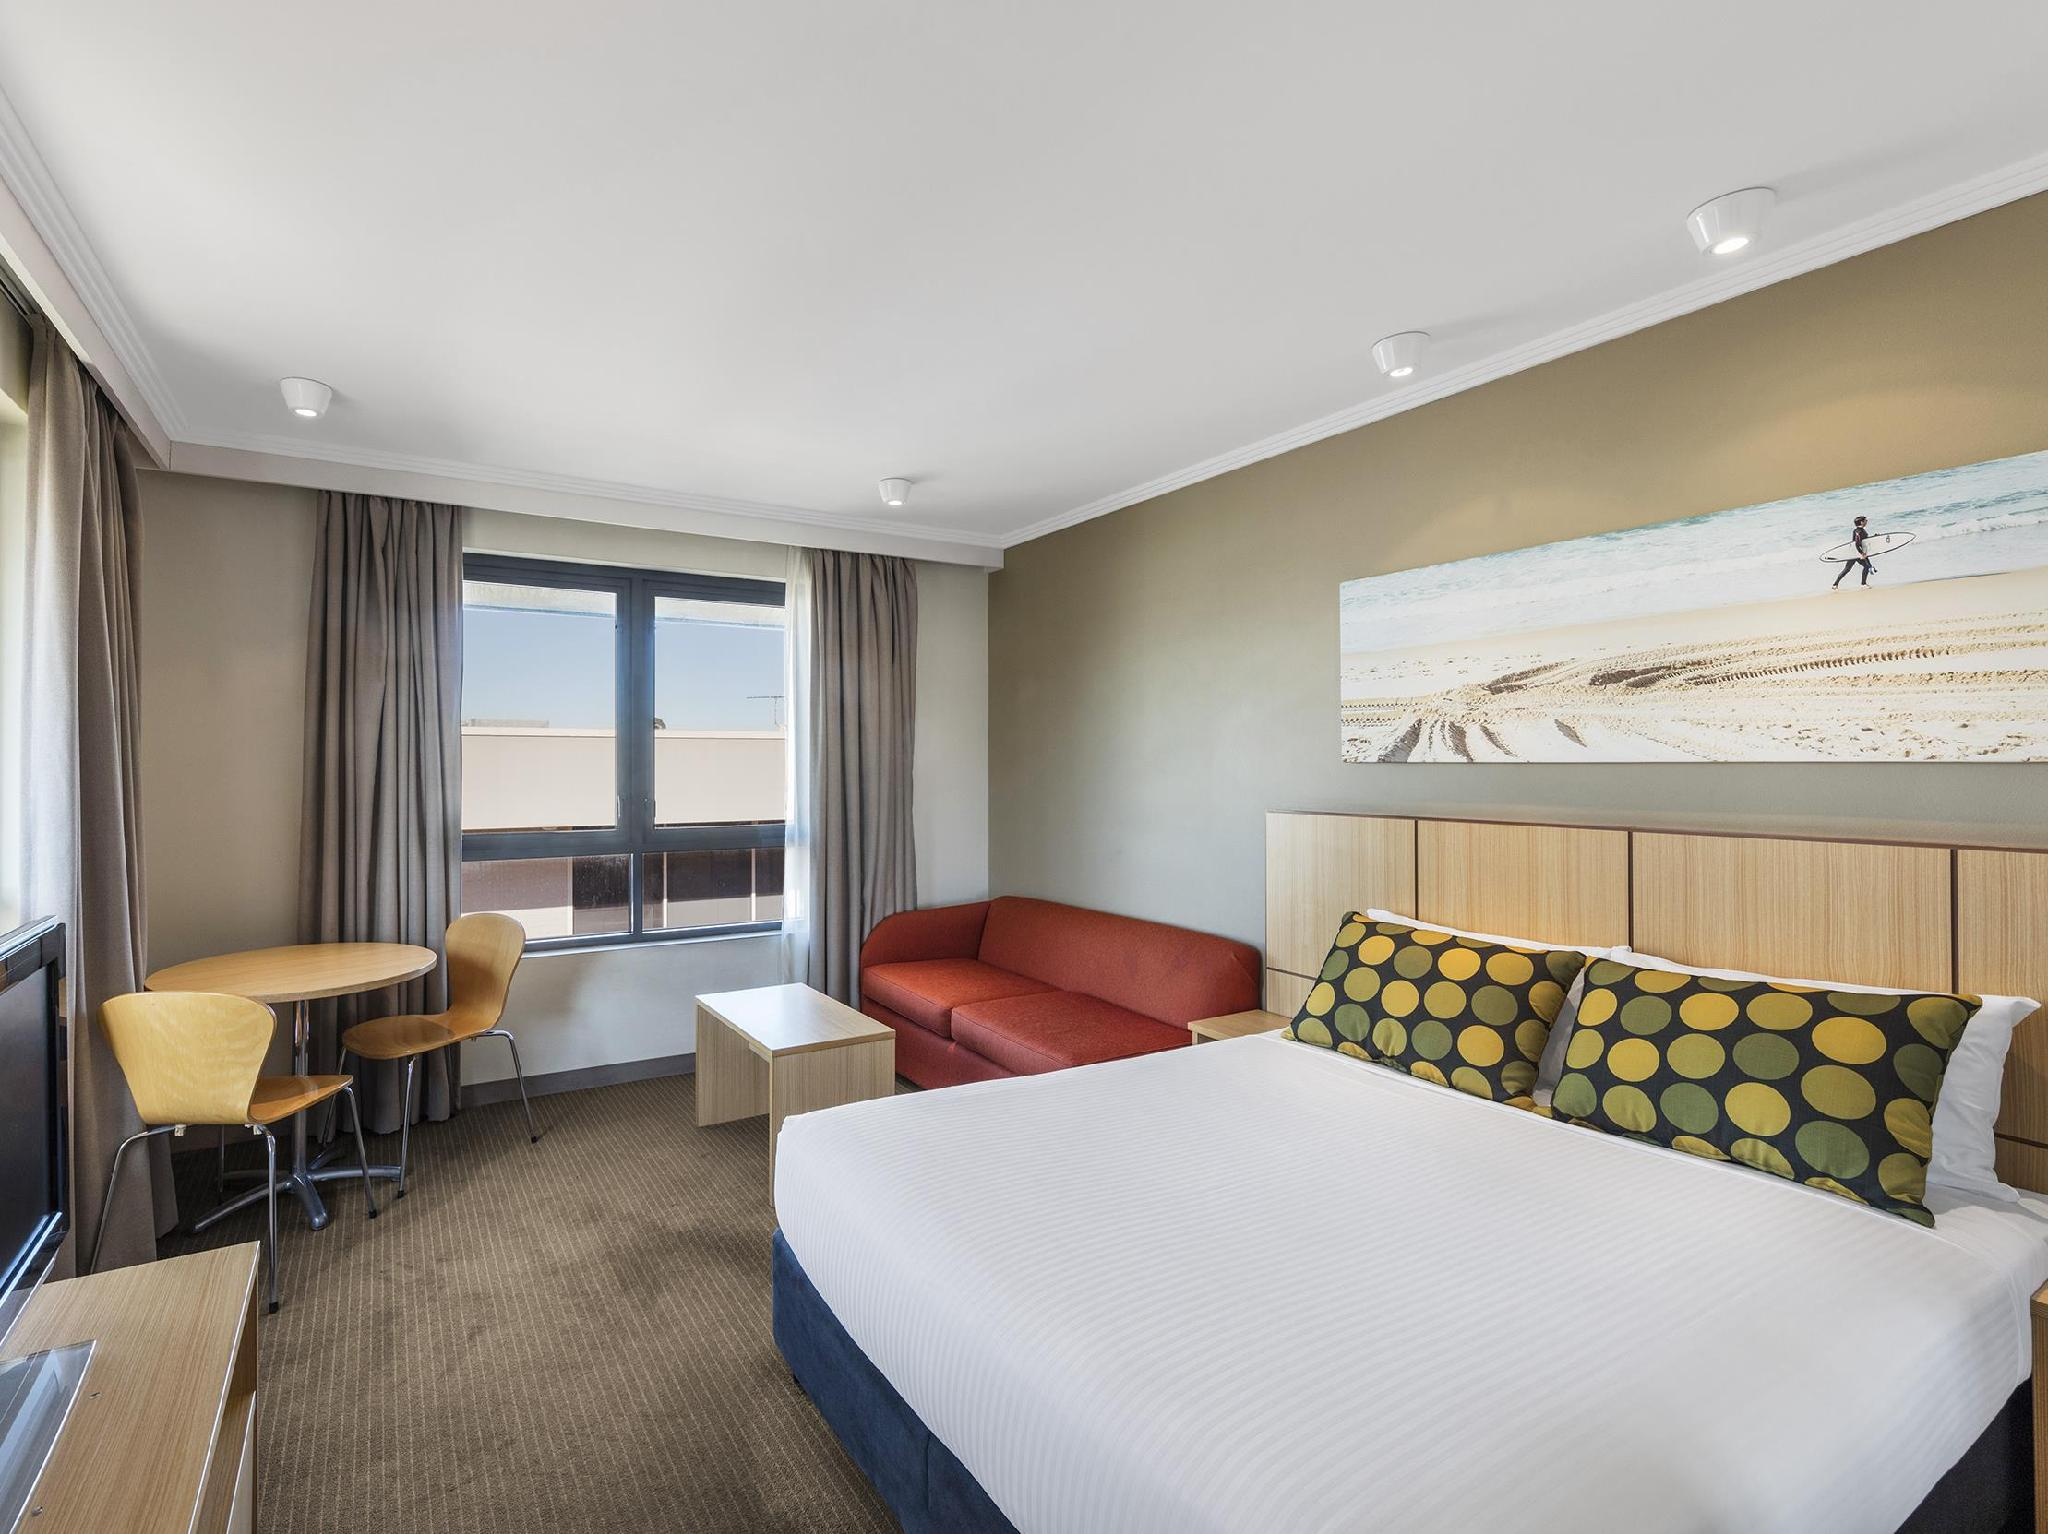 Travelodge Hotel Manly Warringah Sydney – Reviews, Photos, Prices and Deals